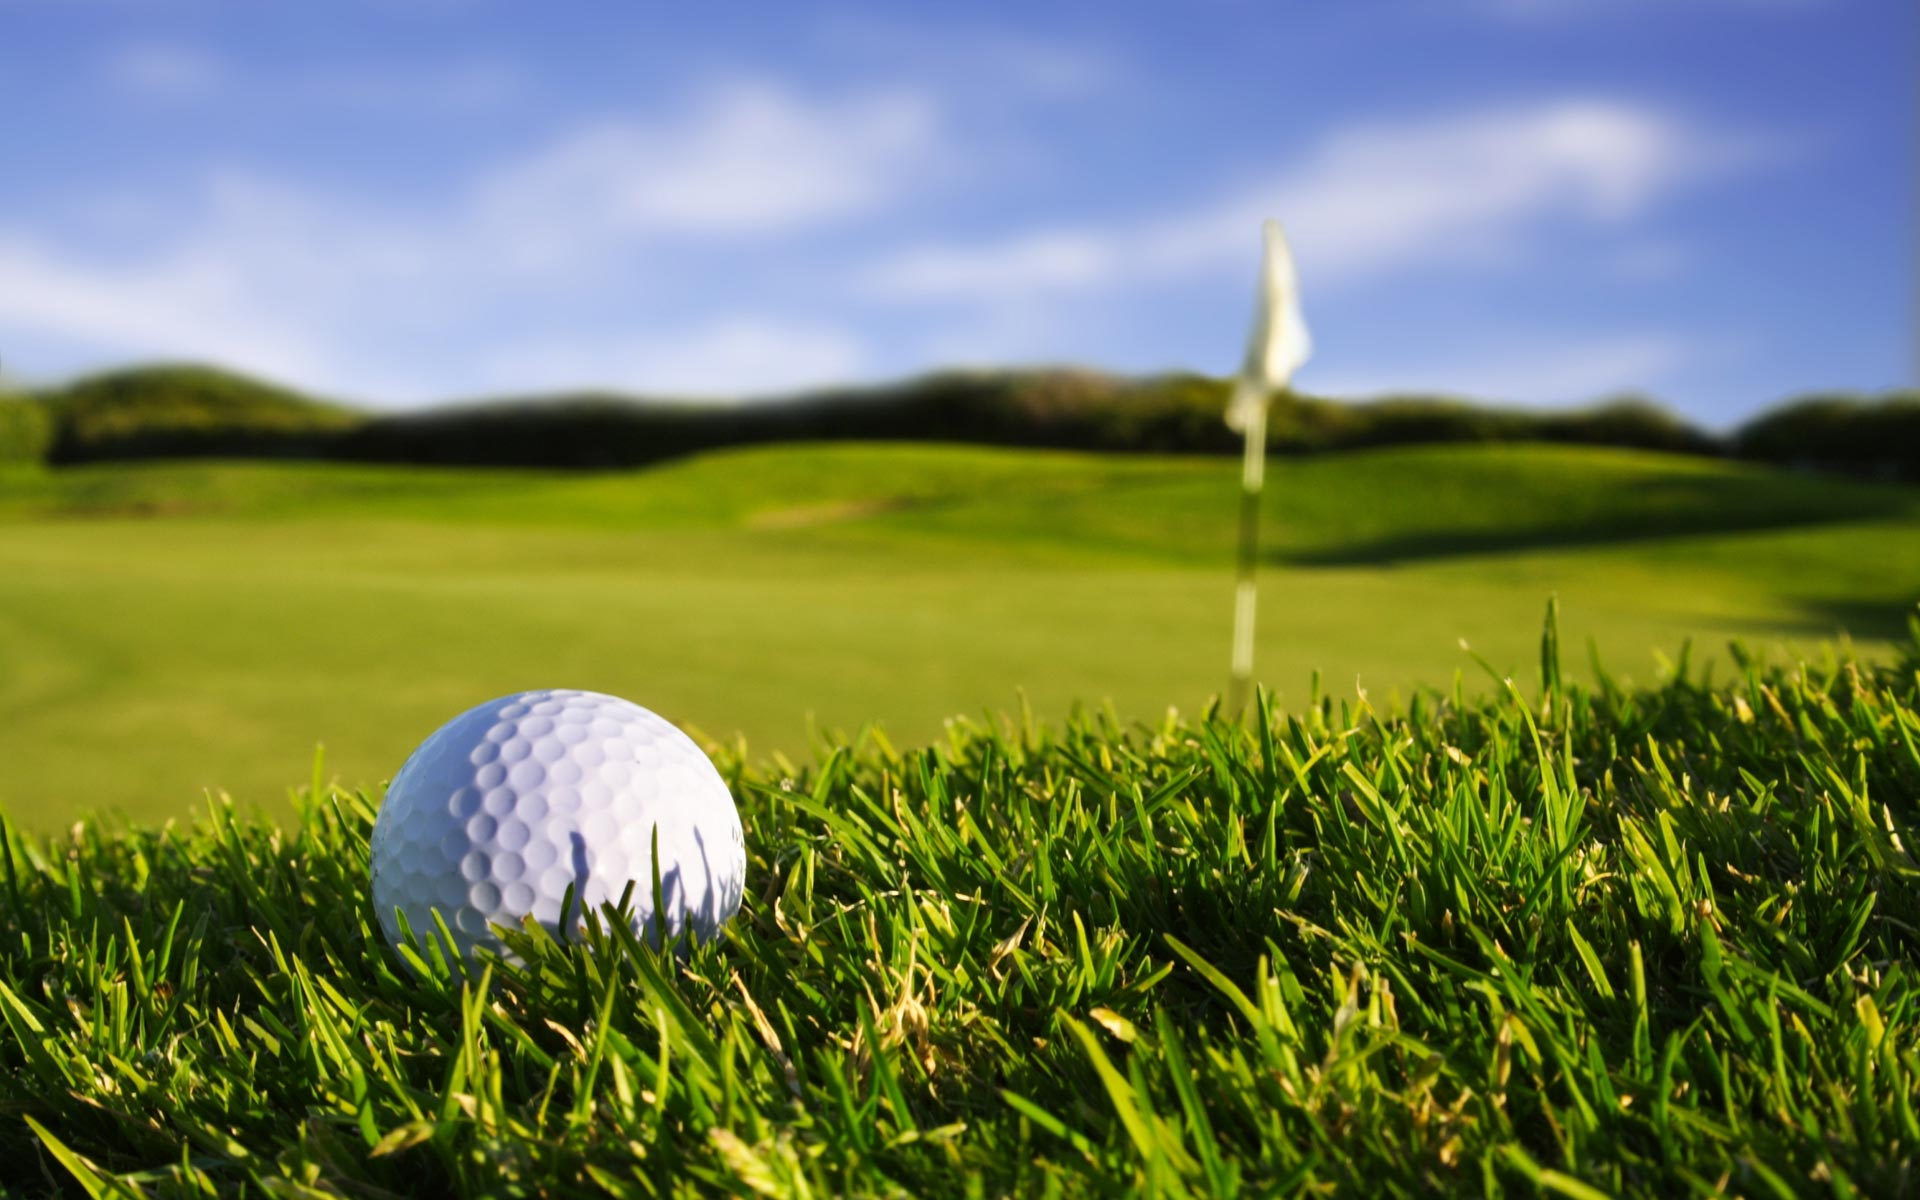 Hd Golf Course Wallpaper 3103 Hd Wallpapers in Sports   Imagescicom 1920x1200